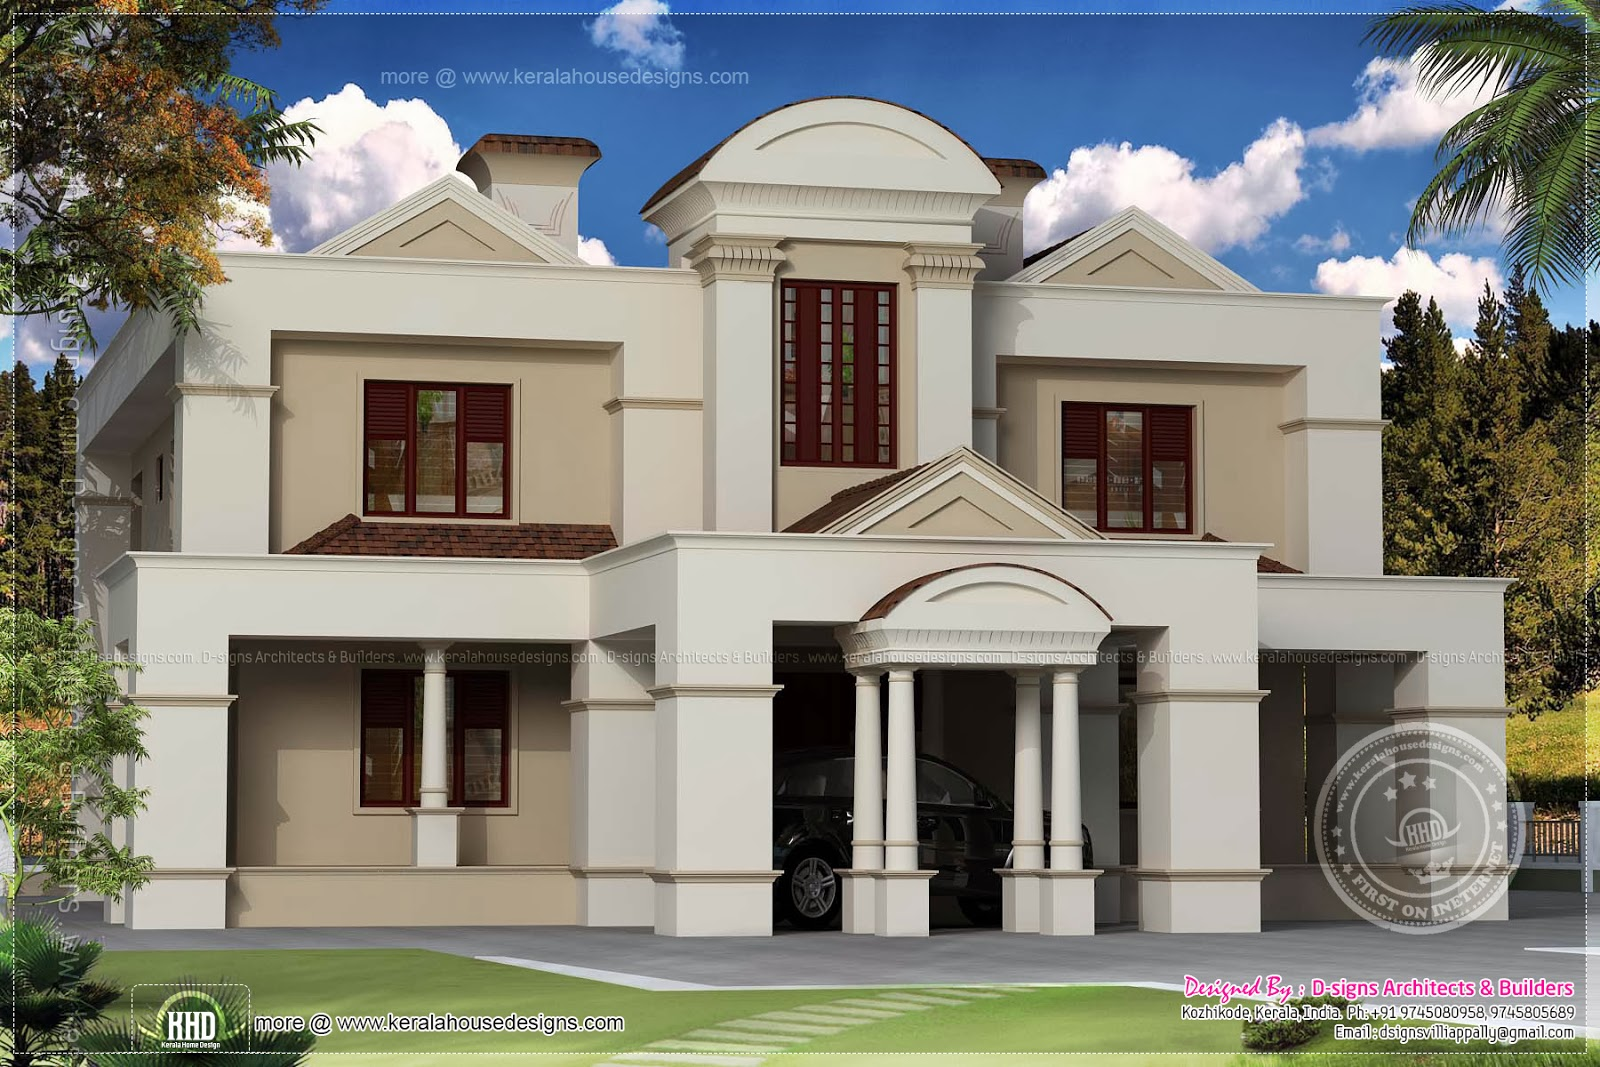 Traditional old house renovation plan to colonial style Colonial home builders